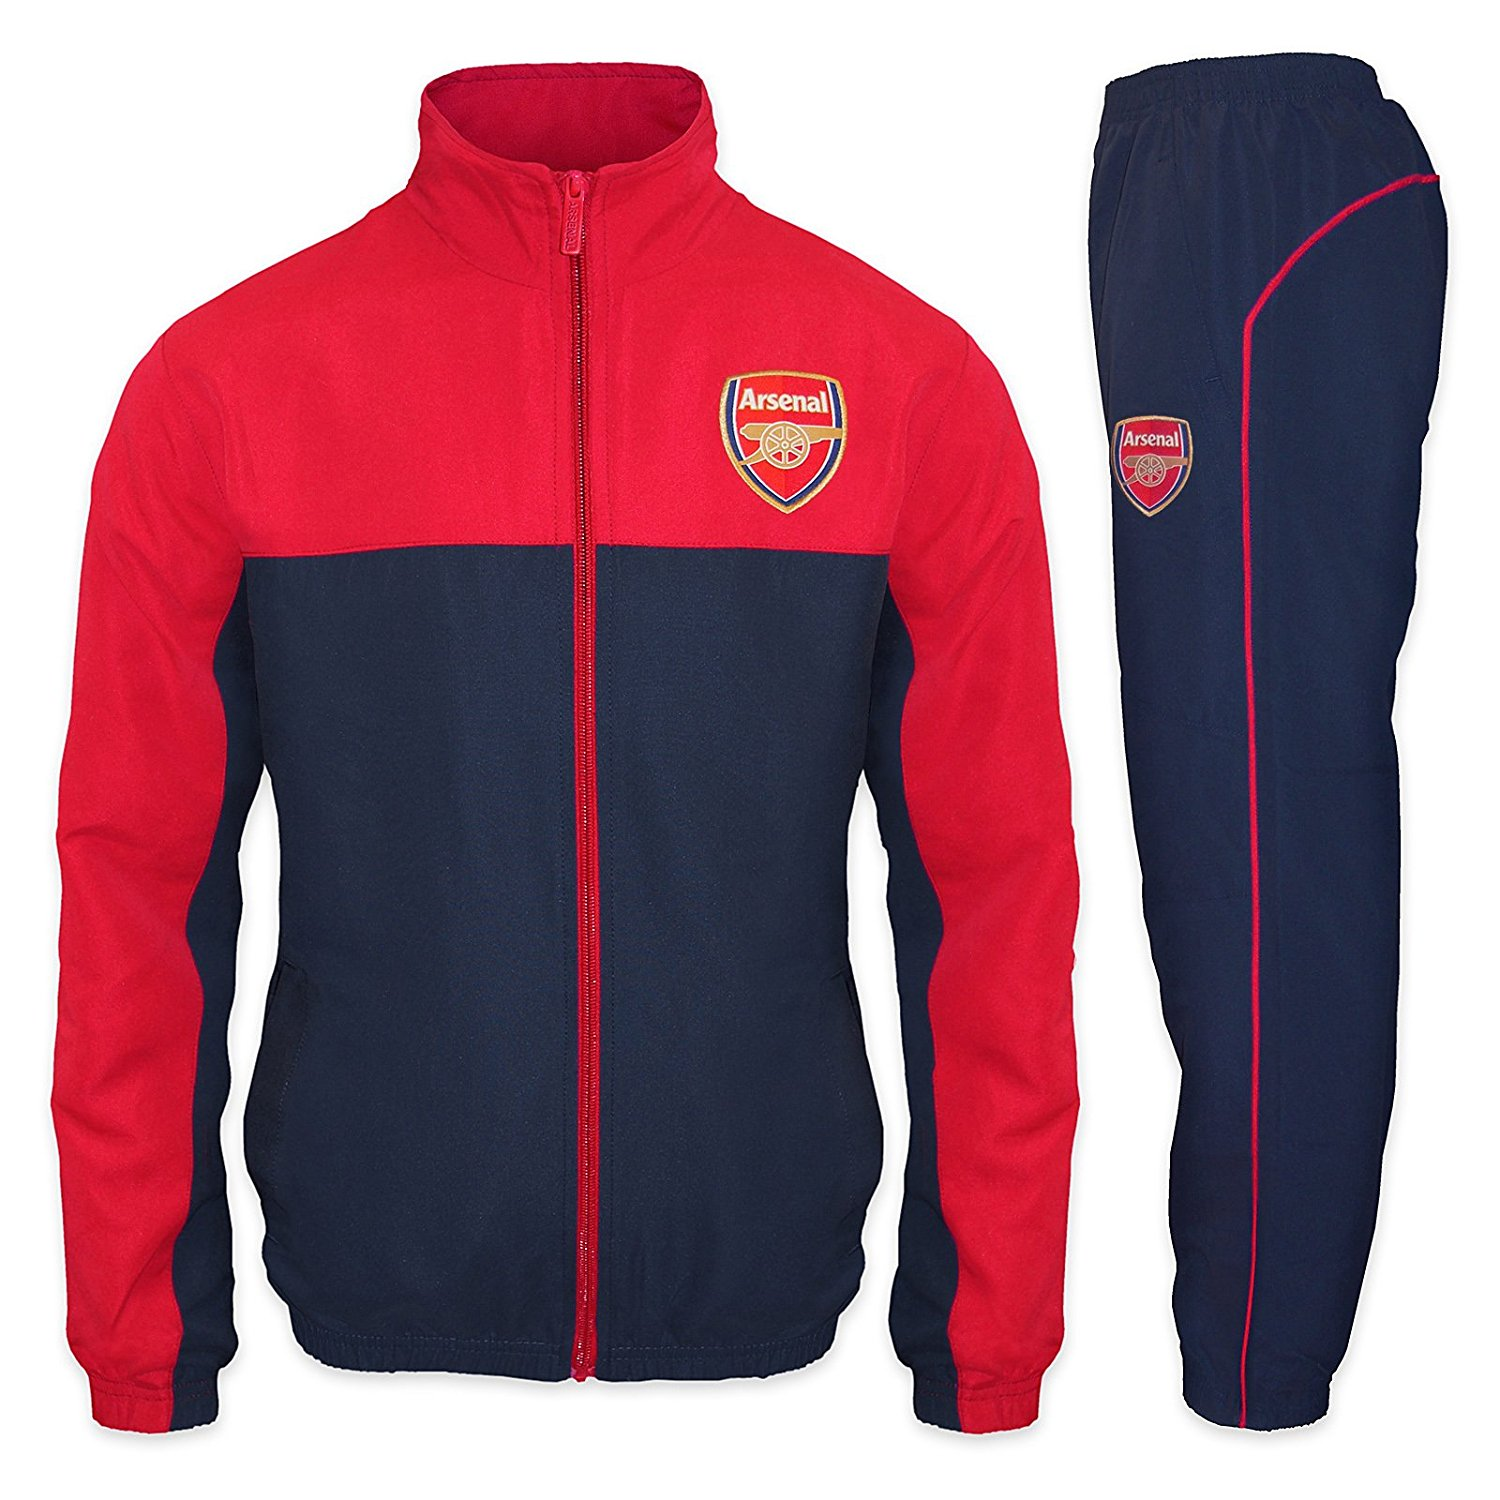 track suit arsenal football club official soccer gift mens jacket u0026 pants tracksuit set VNWYBDR